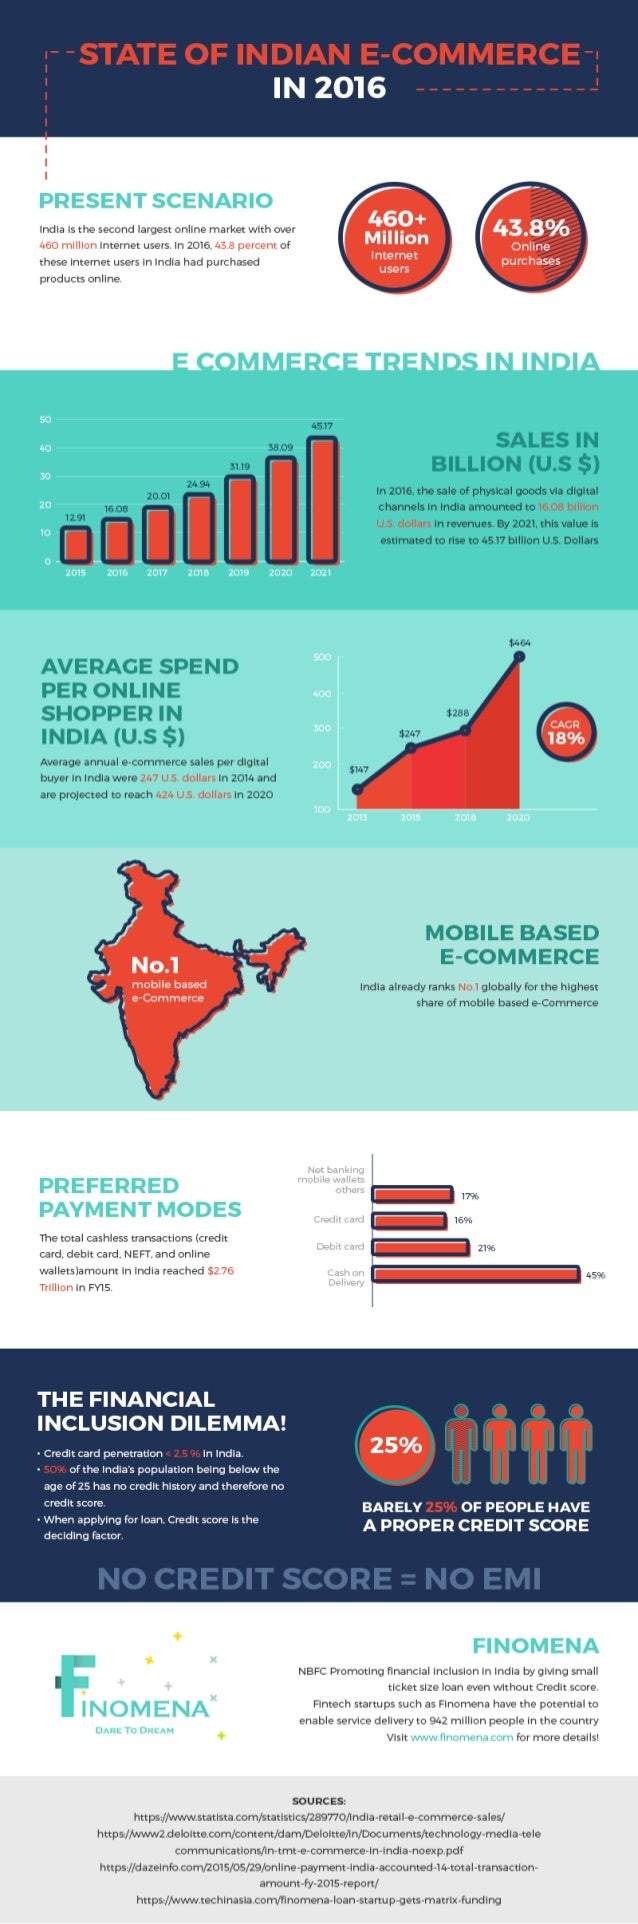 State Of Indian E-Commerce In 2016